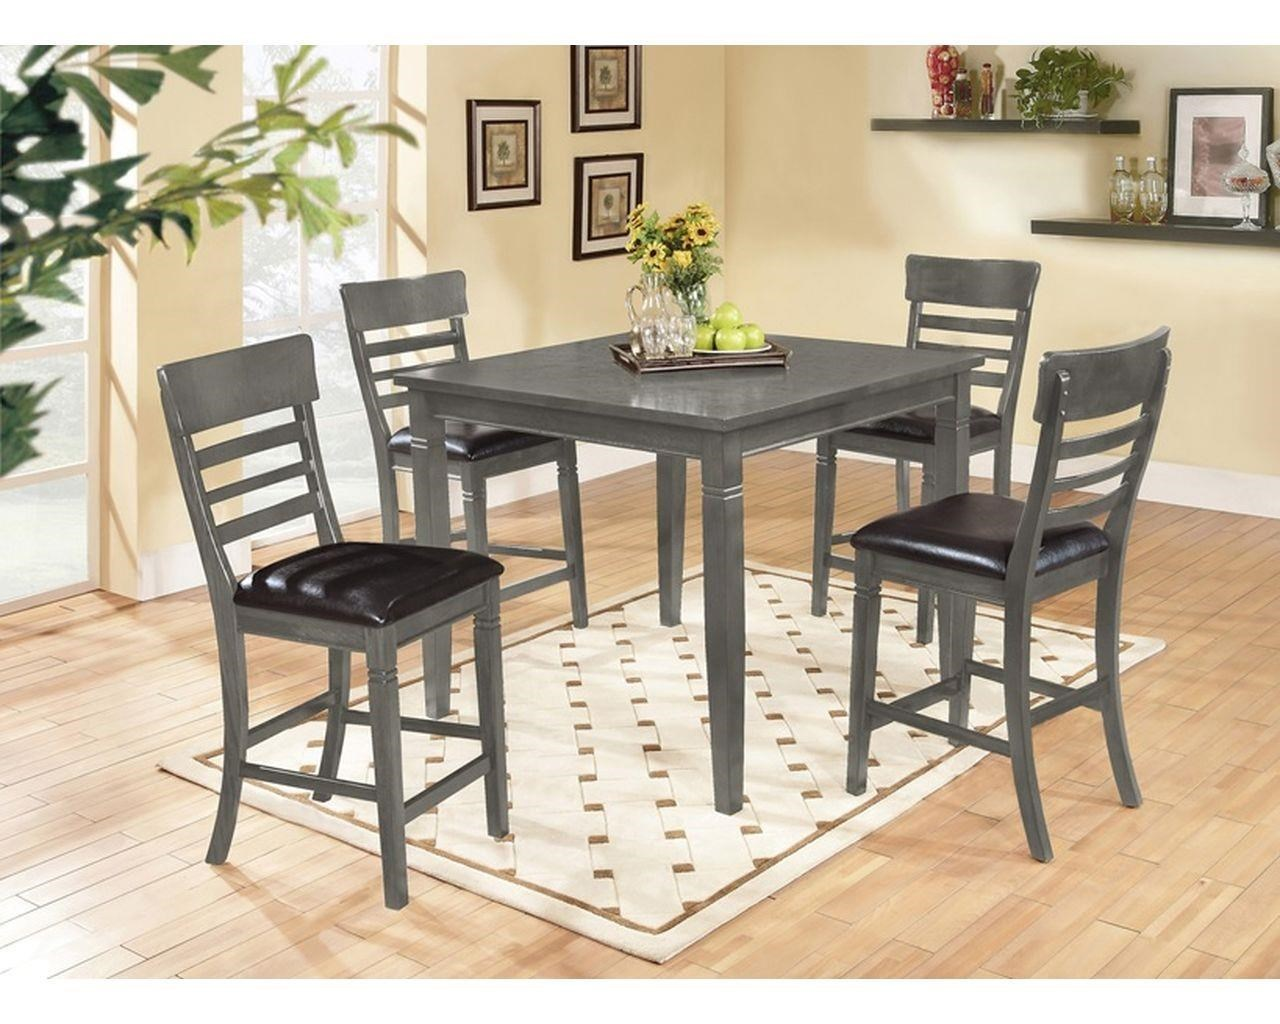 Picture of: Lifestyle Bailey With Ladder Back Pub Chairs Royal Furniture Pub Table And Stool Sets